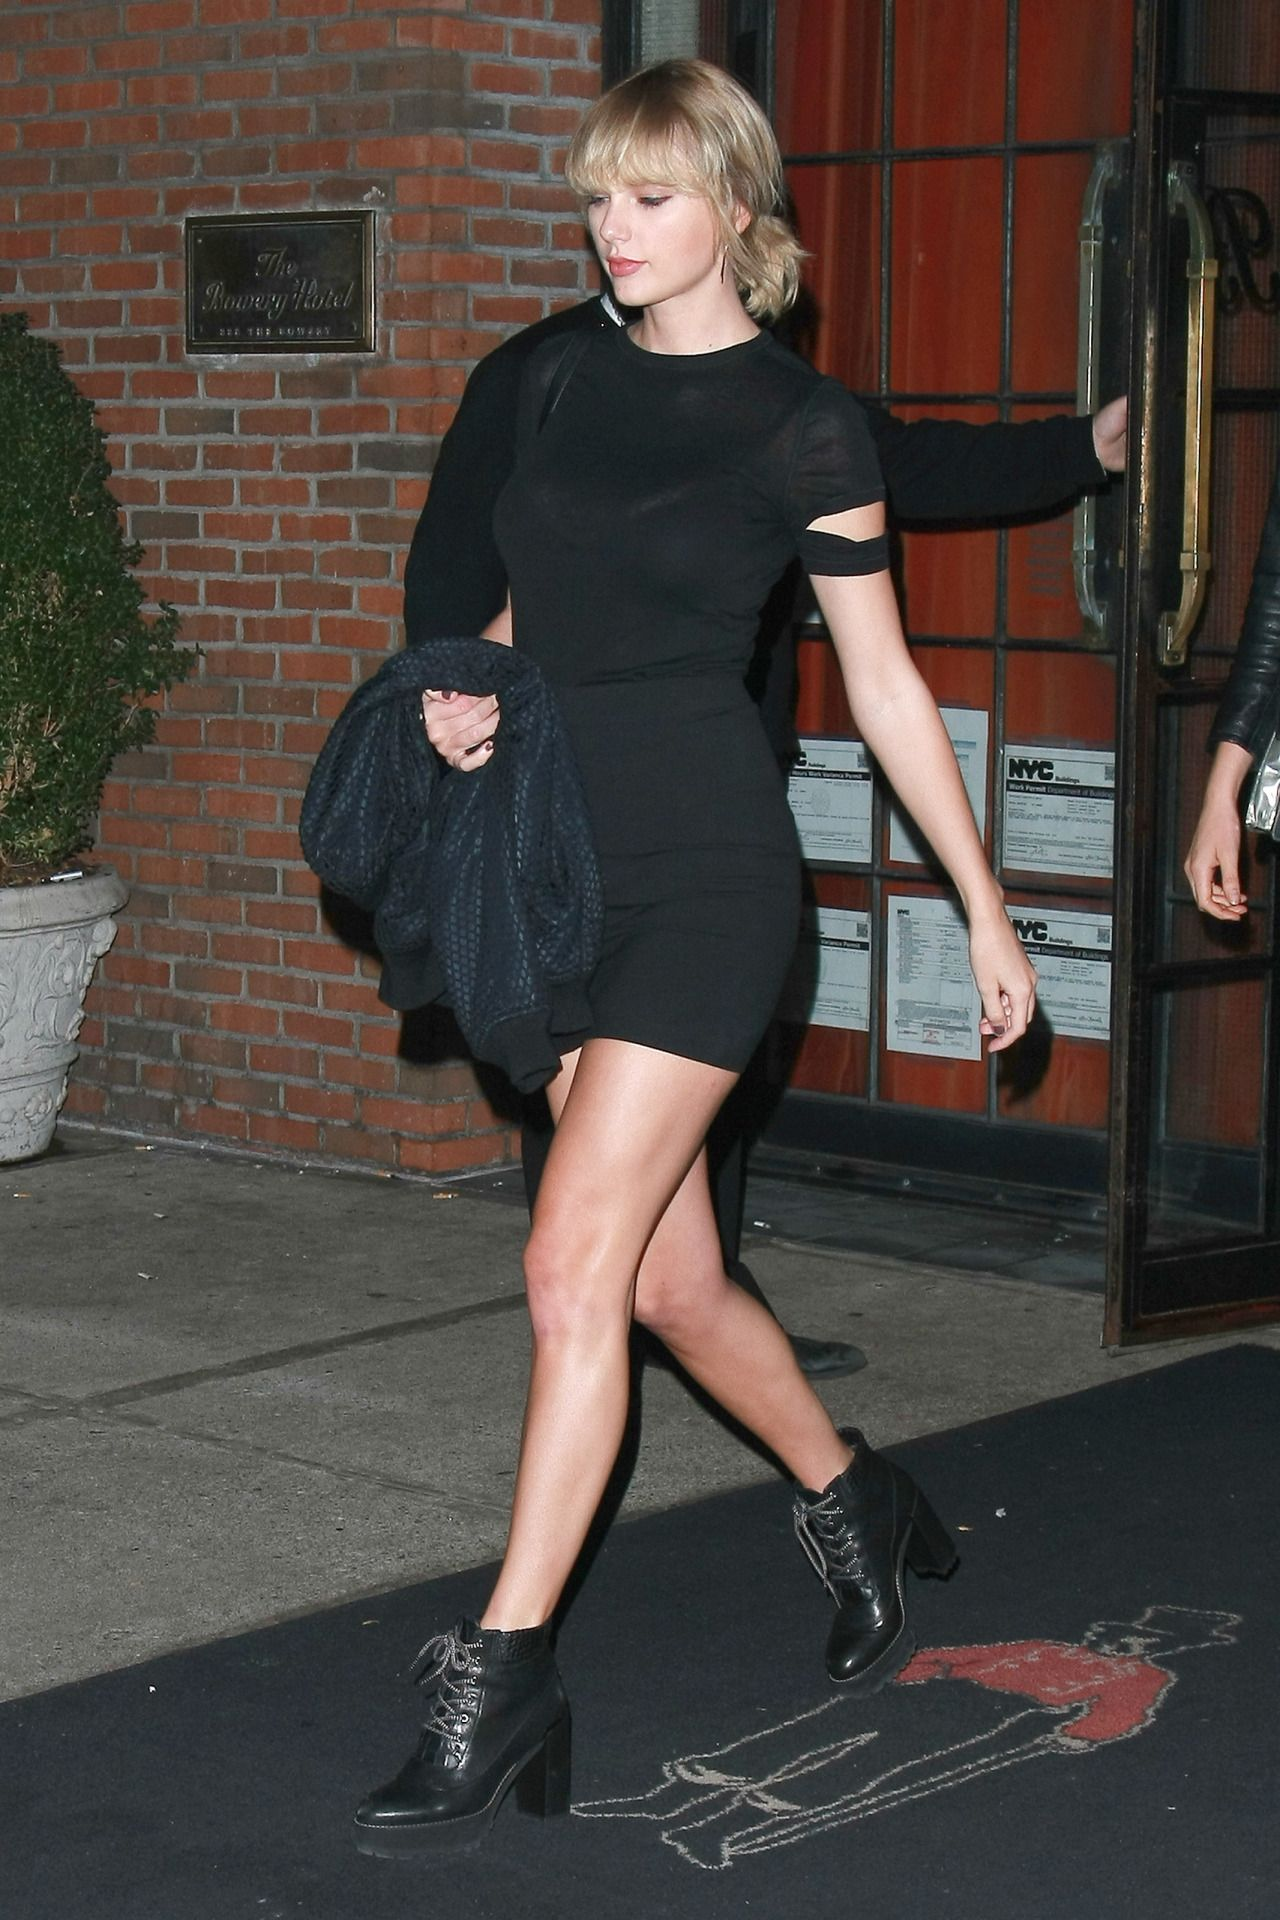 Taylor Swift Looking Good In Short Shorts, Shoots Video